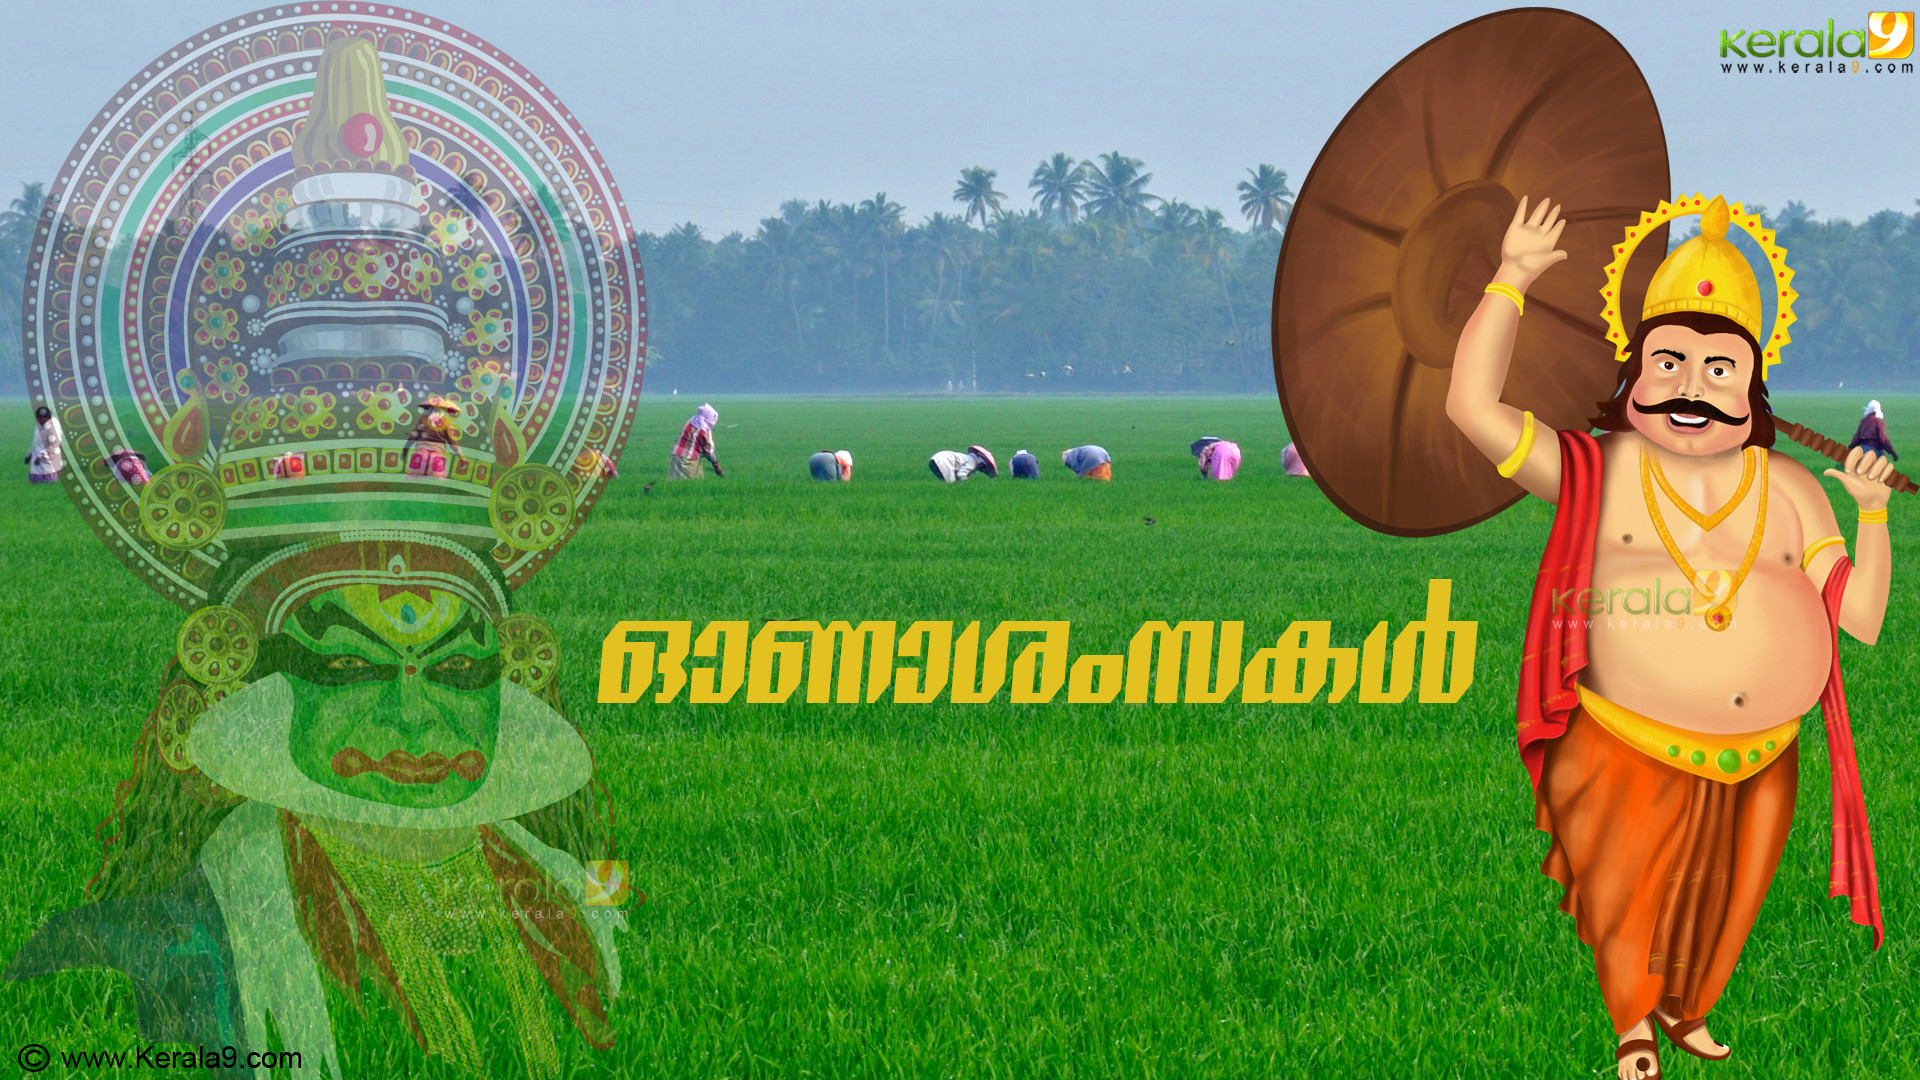 Kerala Wallpapers (50+ Pictures